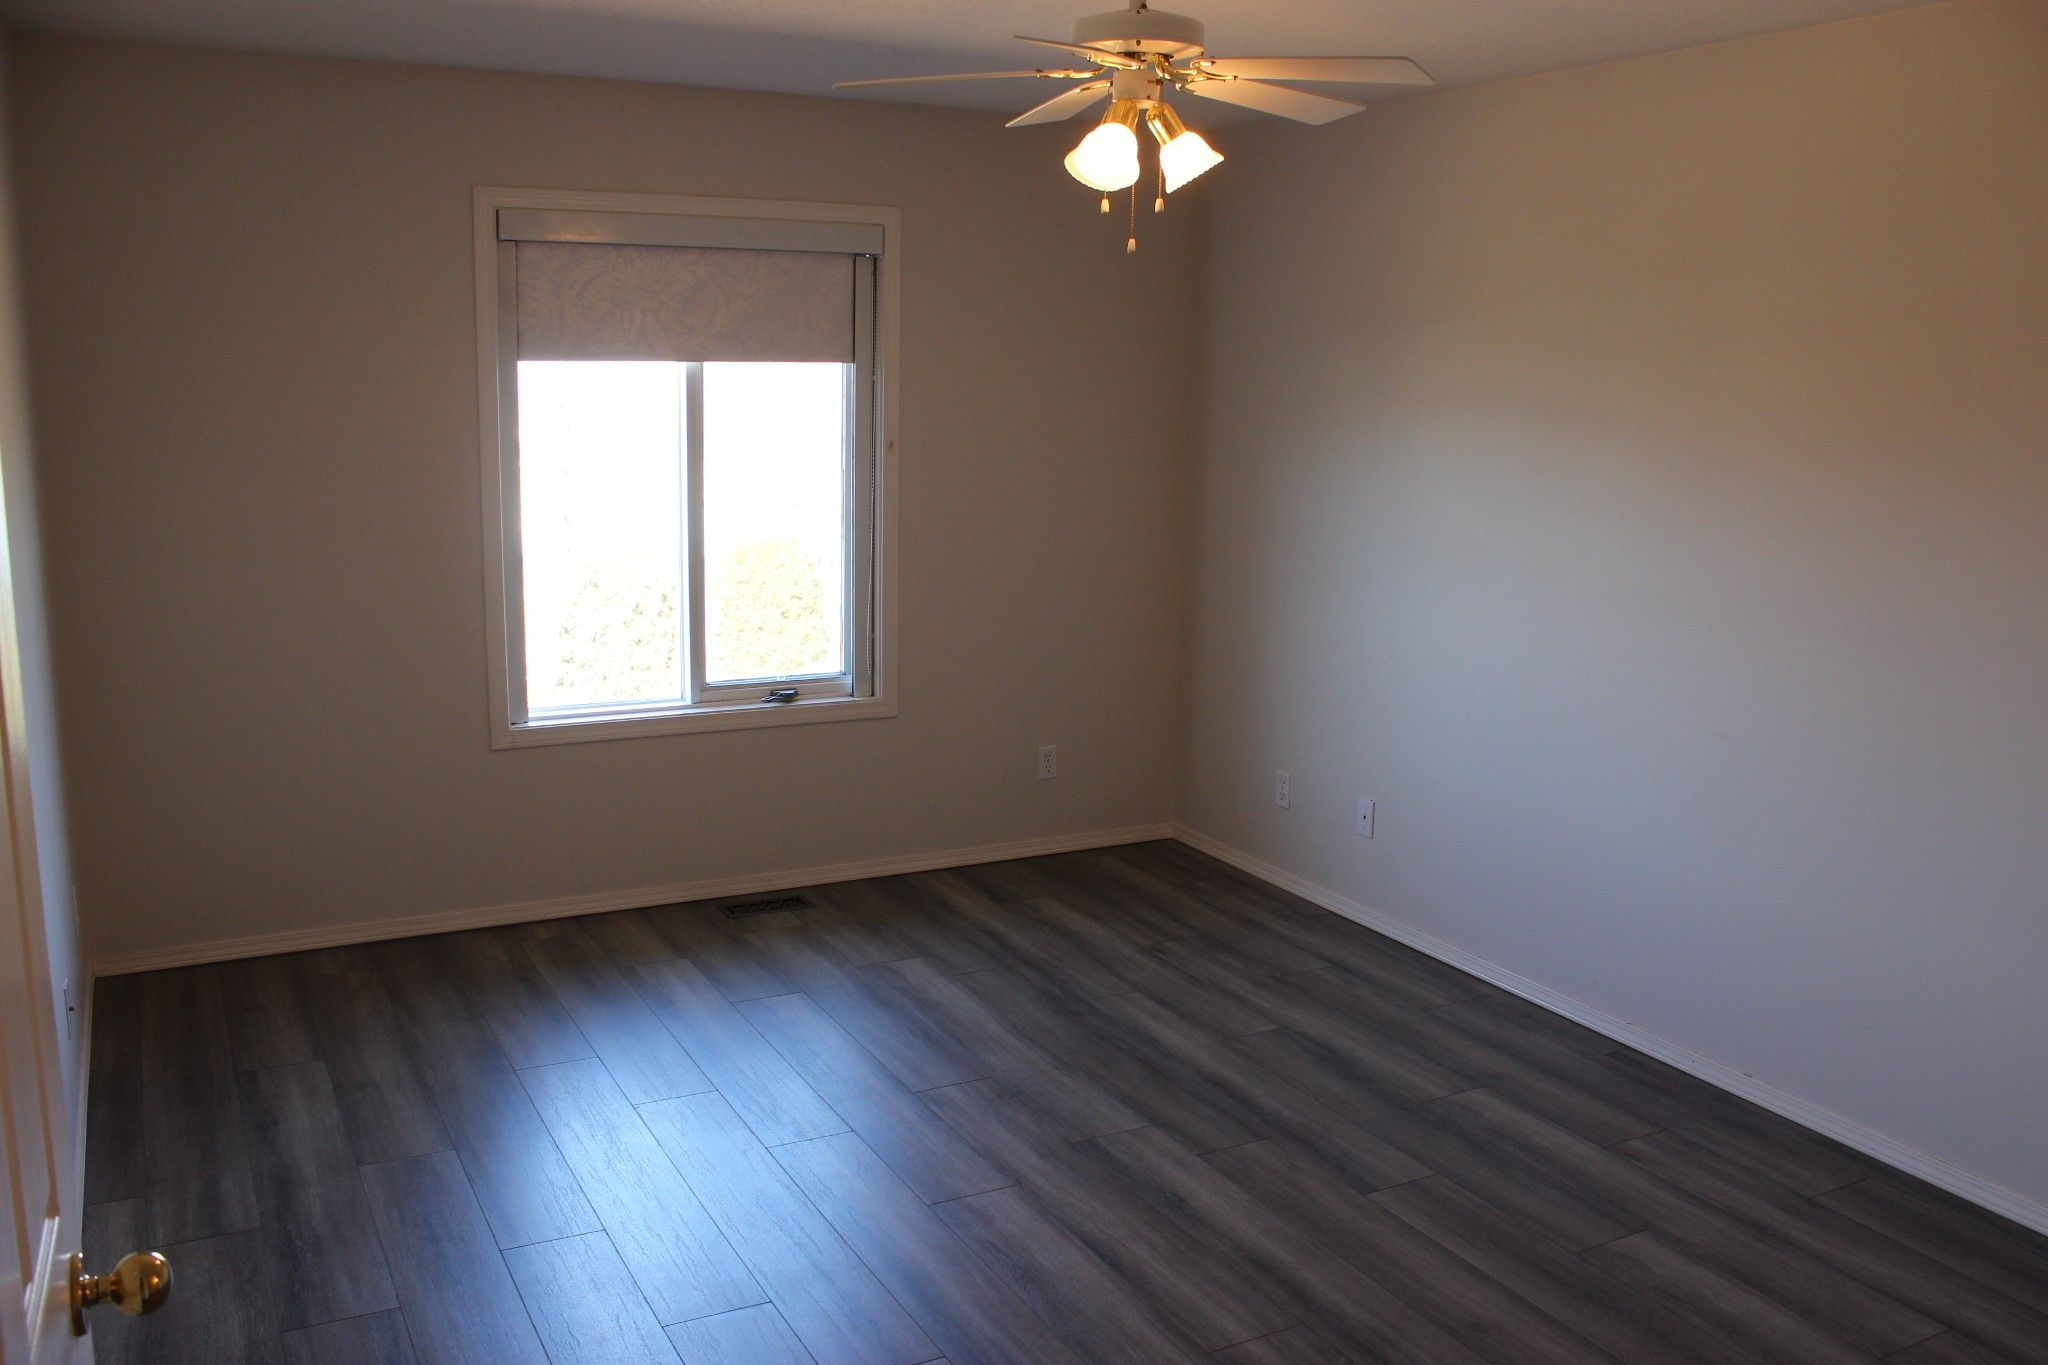 Photo 8: Photos: 4 1580 Springhill Drive in Kamloops: Sahali Townhouse for sale : MLS®# 156043